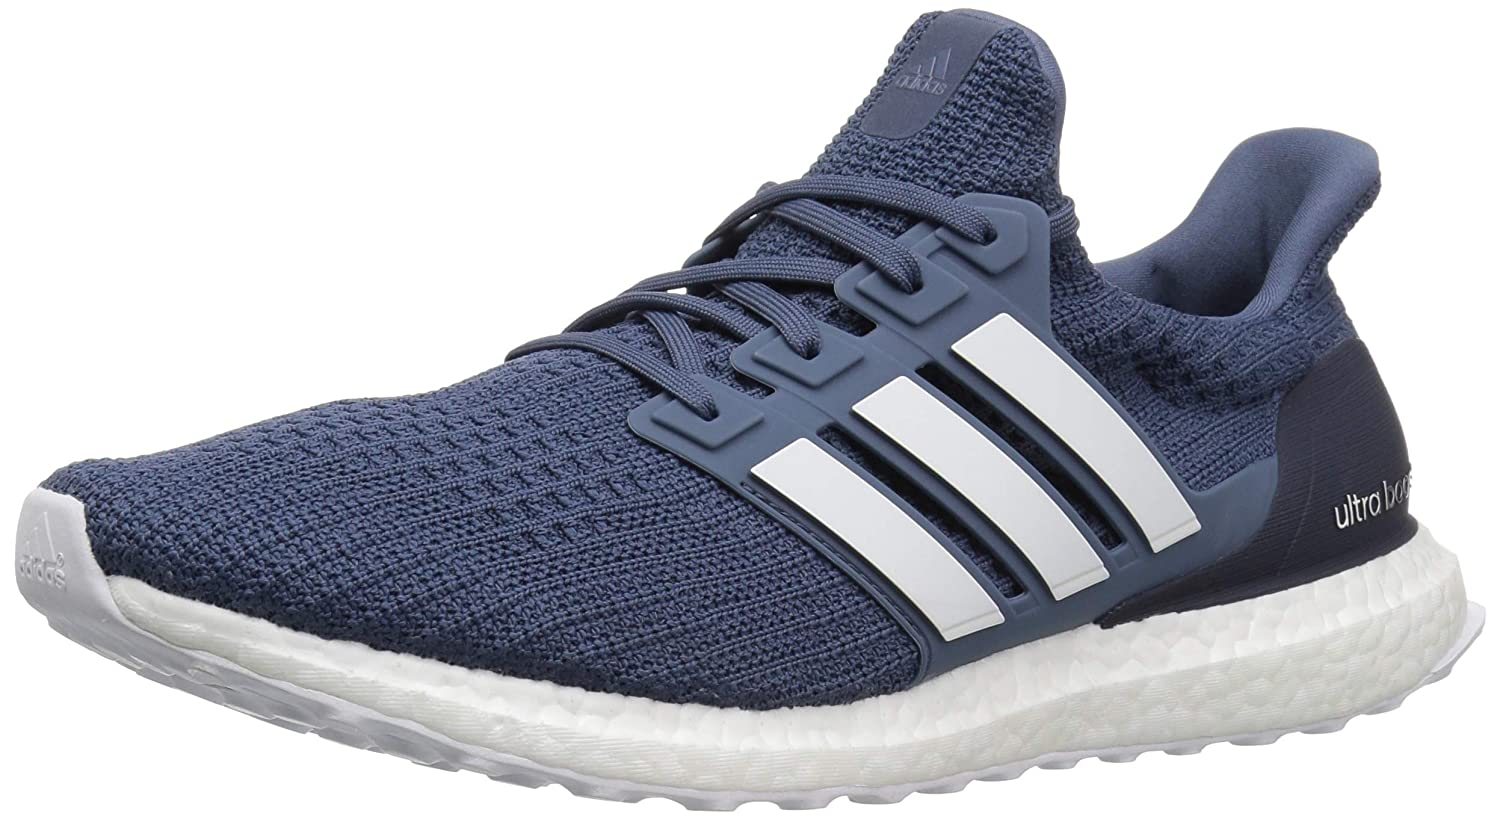 Tech Ink Cloud White Vapour Grey Adidas Men's Ultraboost Running shoes